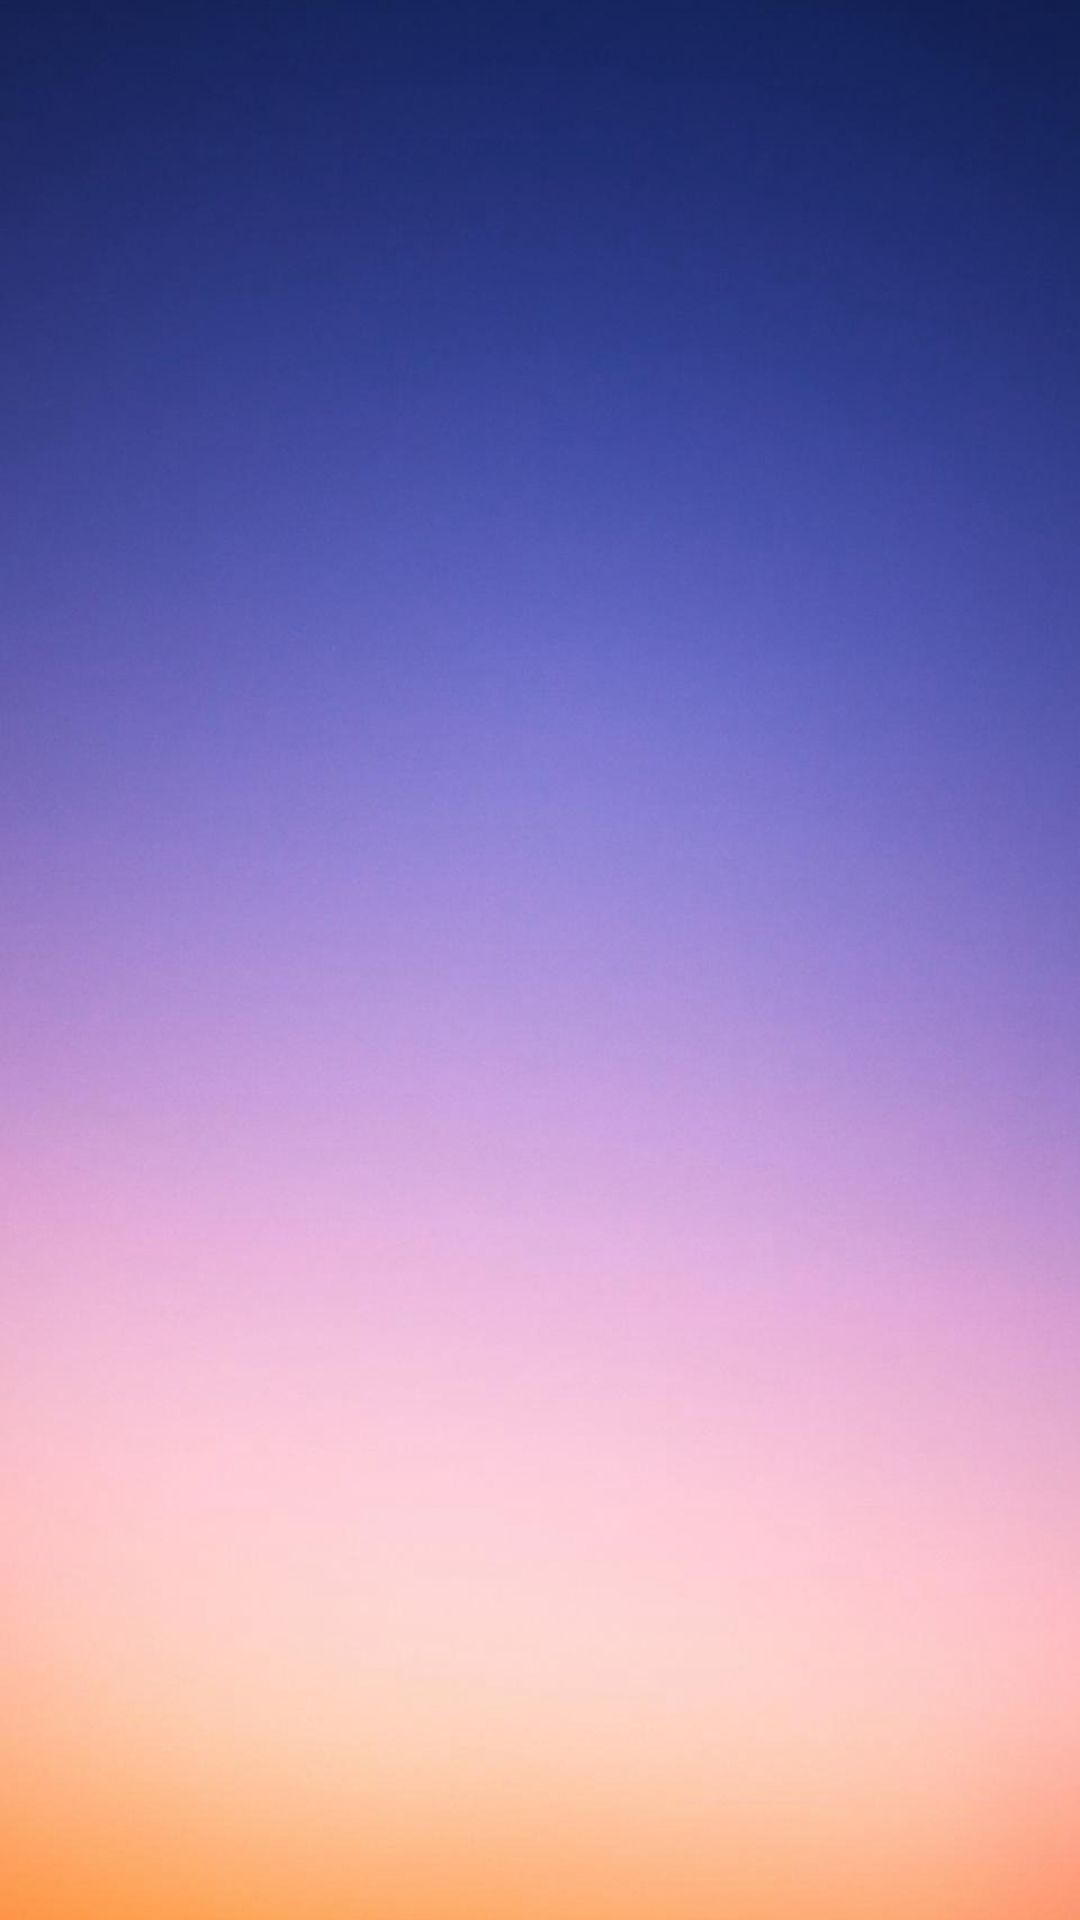 Ios 8 background image - Ios8 Theme Color Gradation Blur Background Iphone 6 Wallpaper